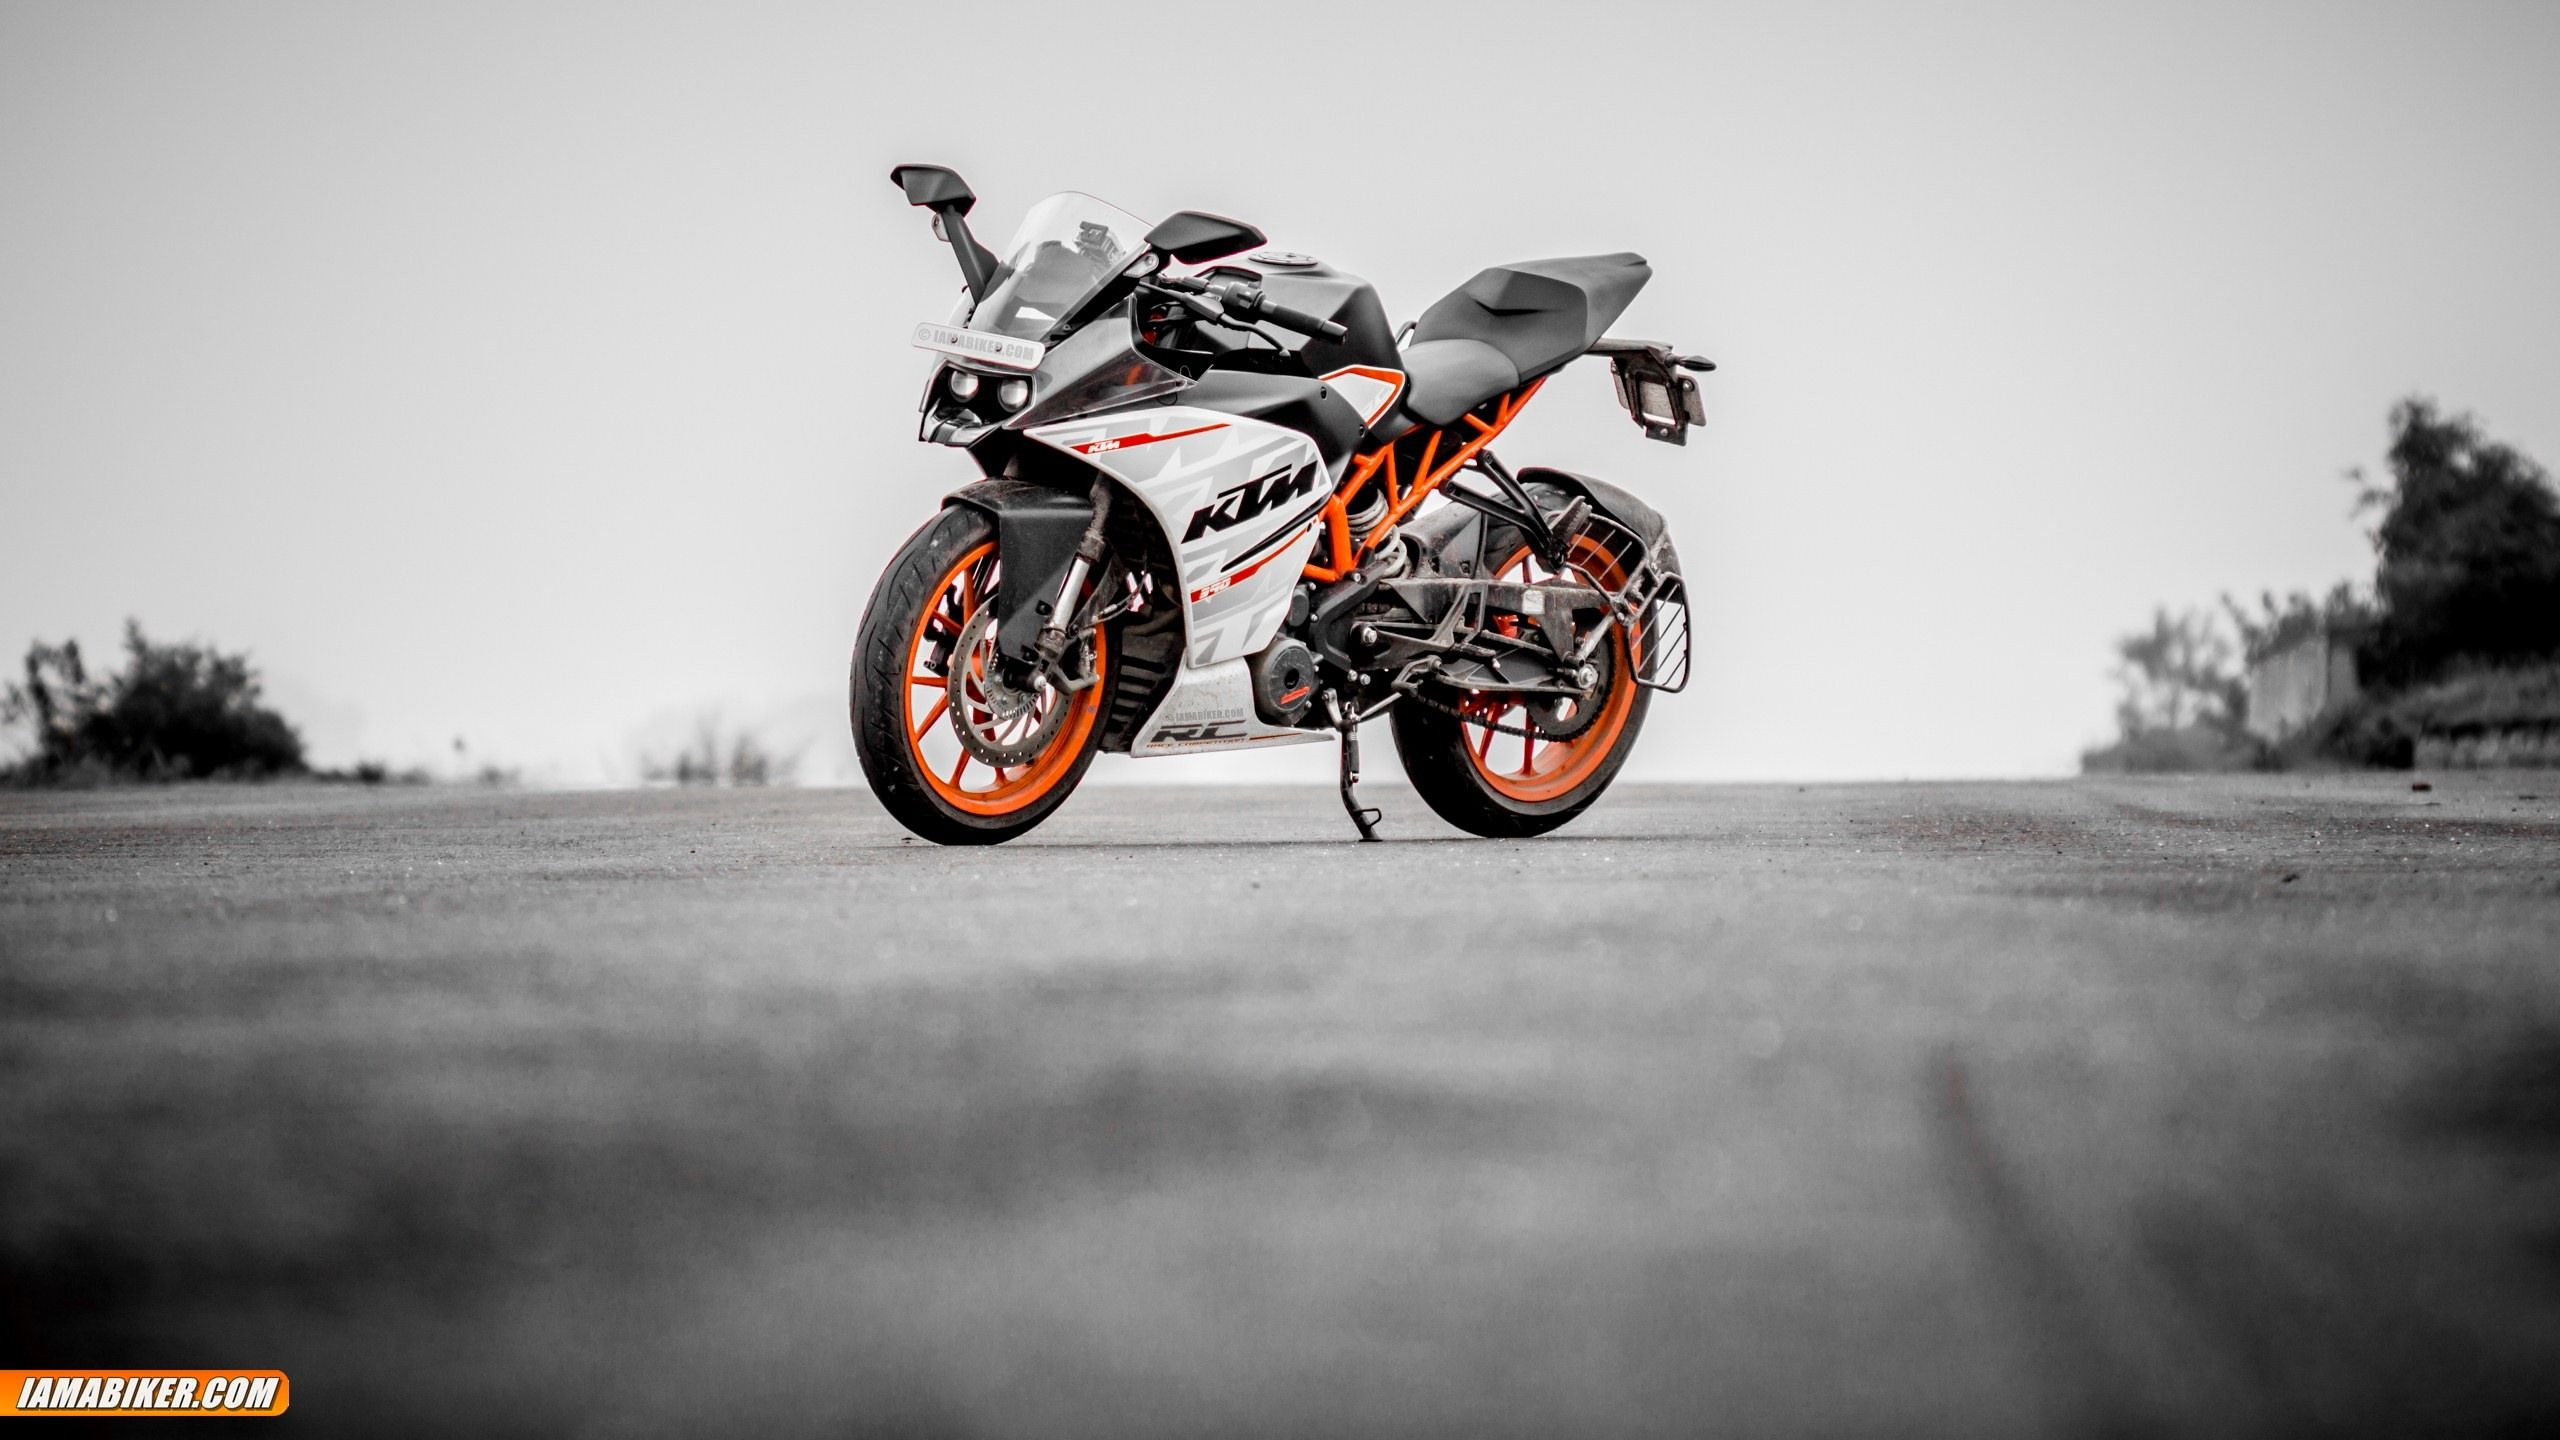 Ktm motorcycles hd wallpapers free wallaper downloads ktm sport - Search Results For Ktm Rc 390 Hd Wallpapers Adorable Wallpapers